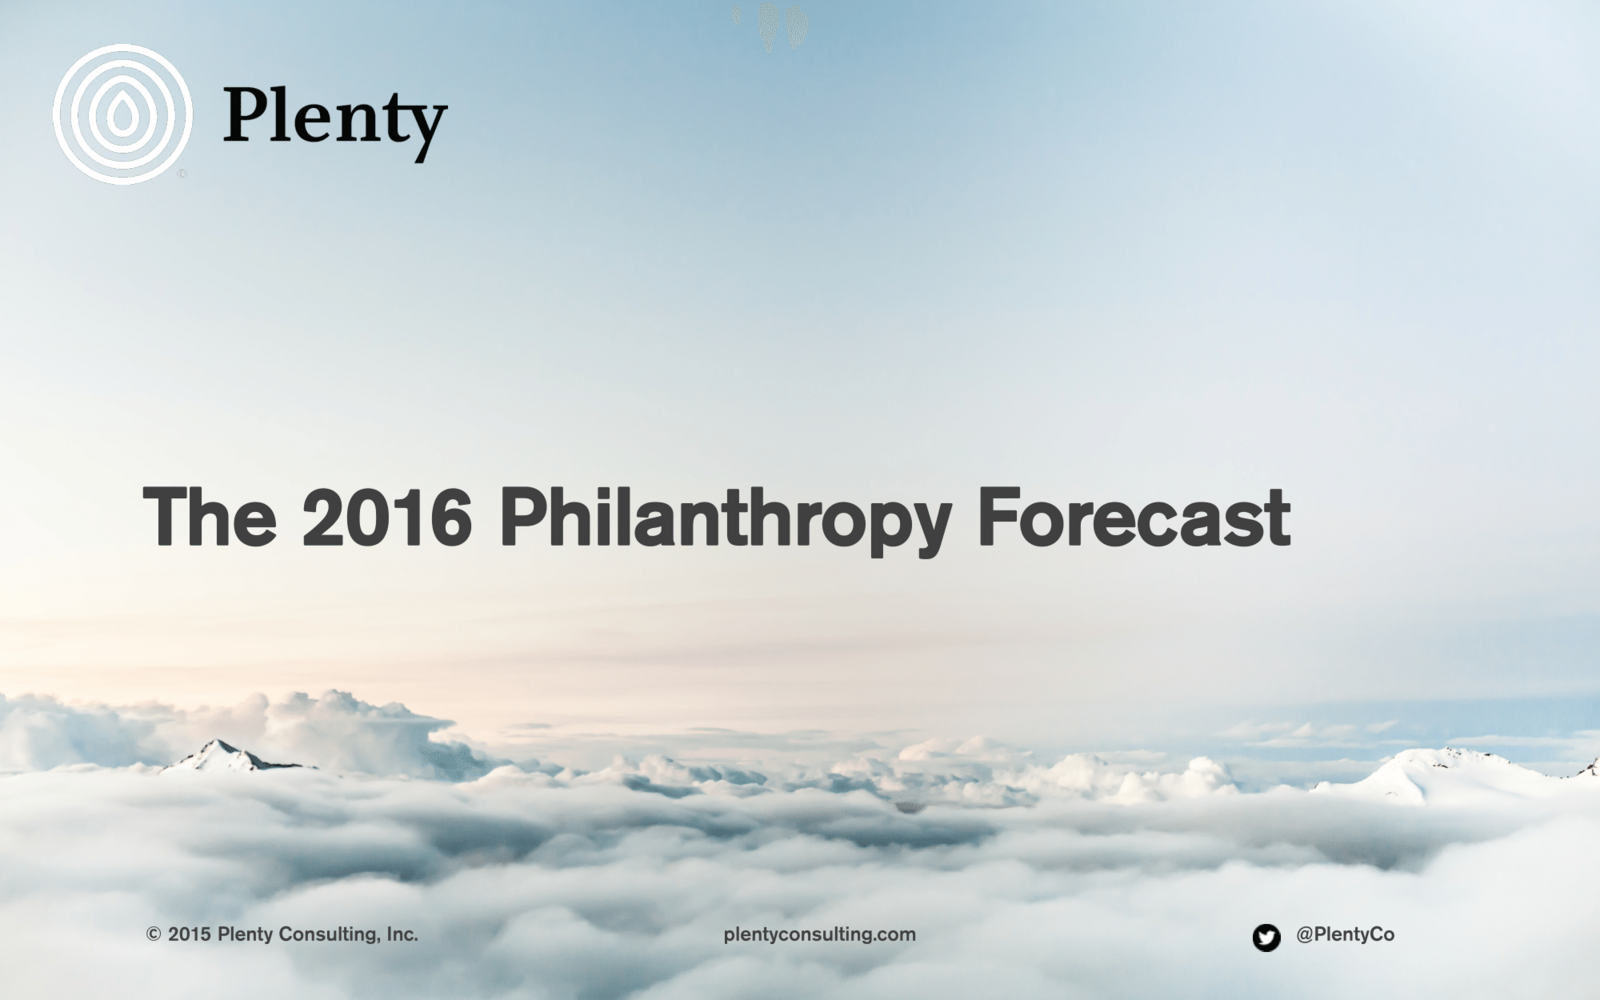 The_2016_Philanthropy_Forecast.png